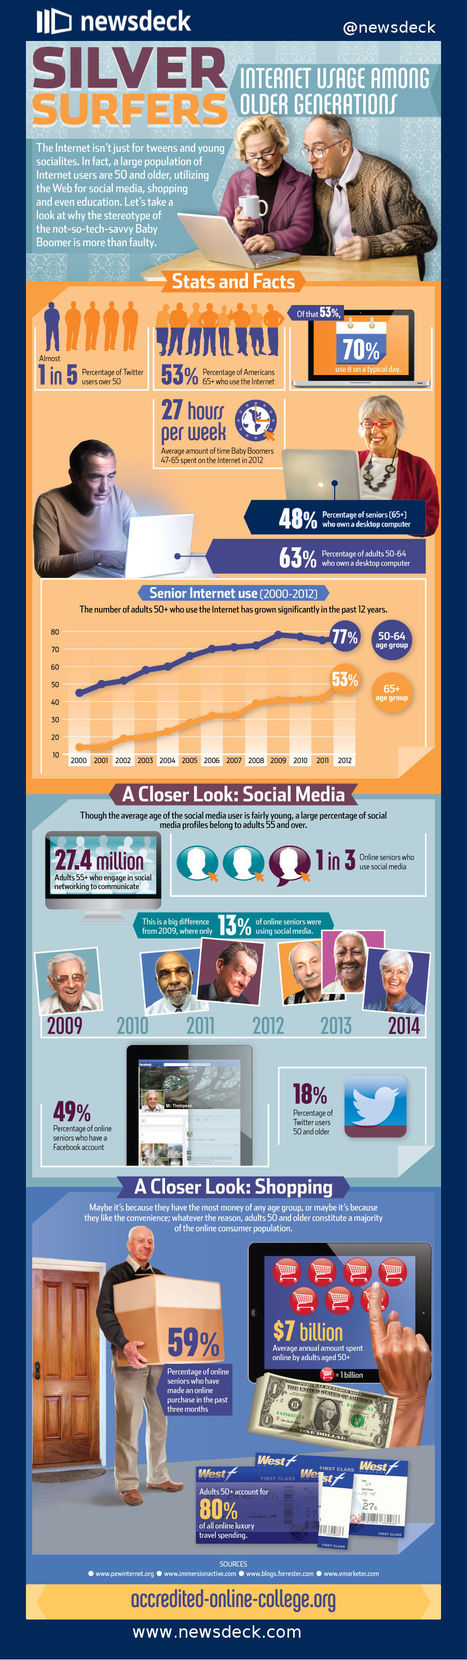 Silver surfers: how the older generation uses social media [INFOGRAPHIC] | Social Content Technology Curation by Newsdeck | Scoop.it